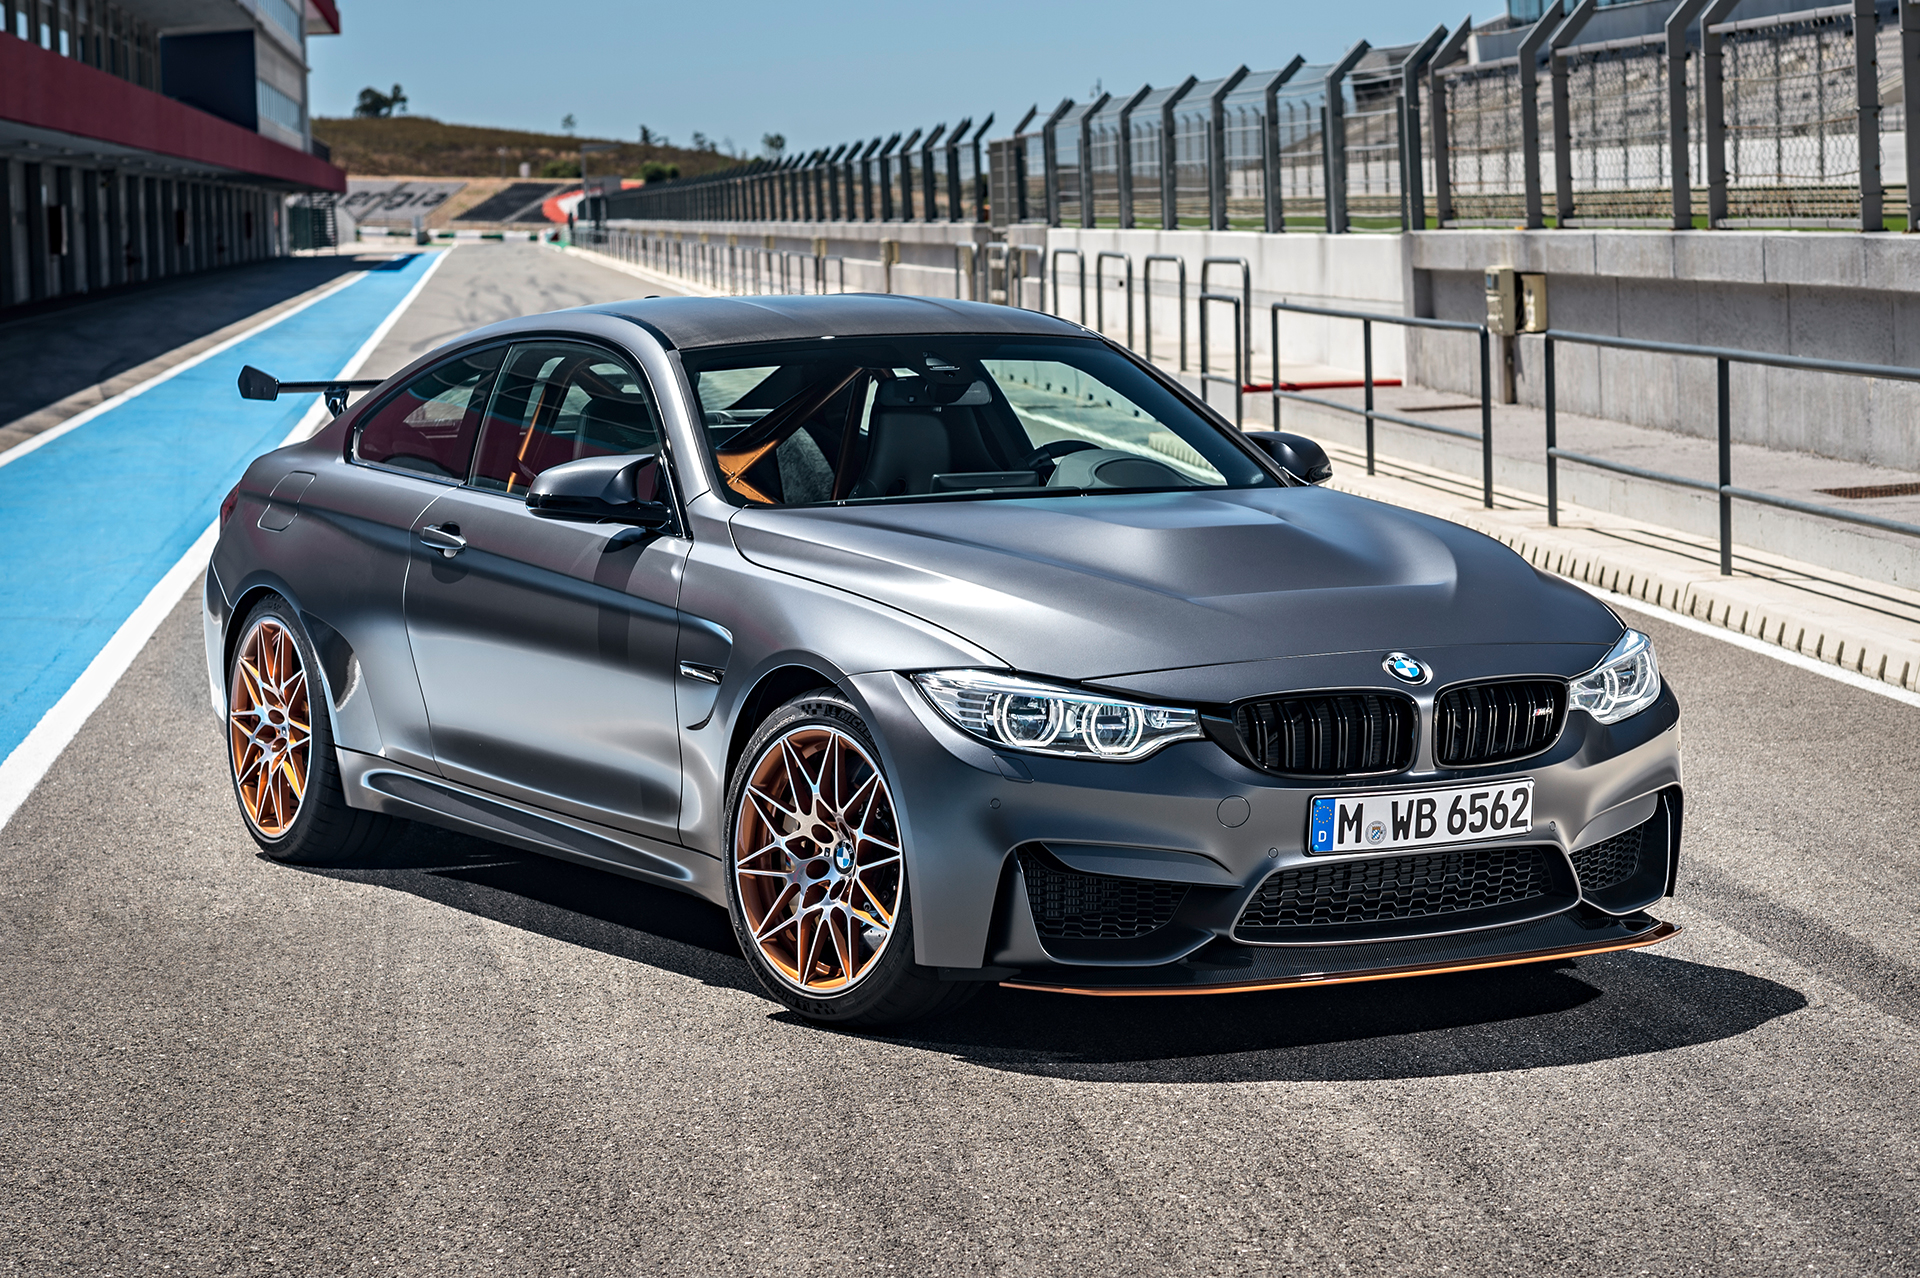 BMW M4 GTS - posé / relax - sur circuit / on track